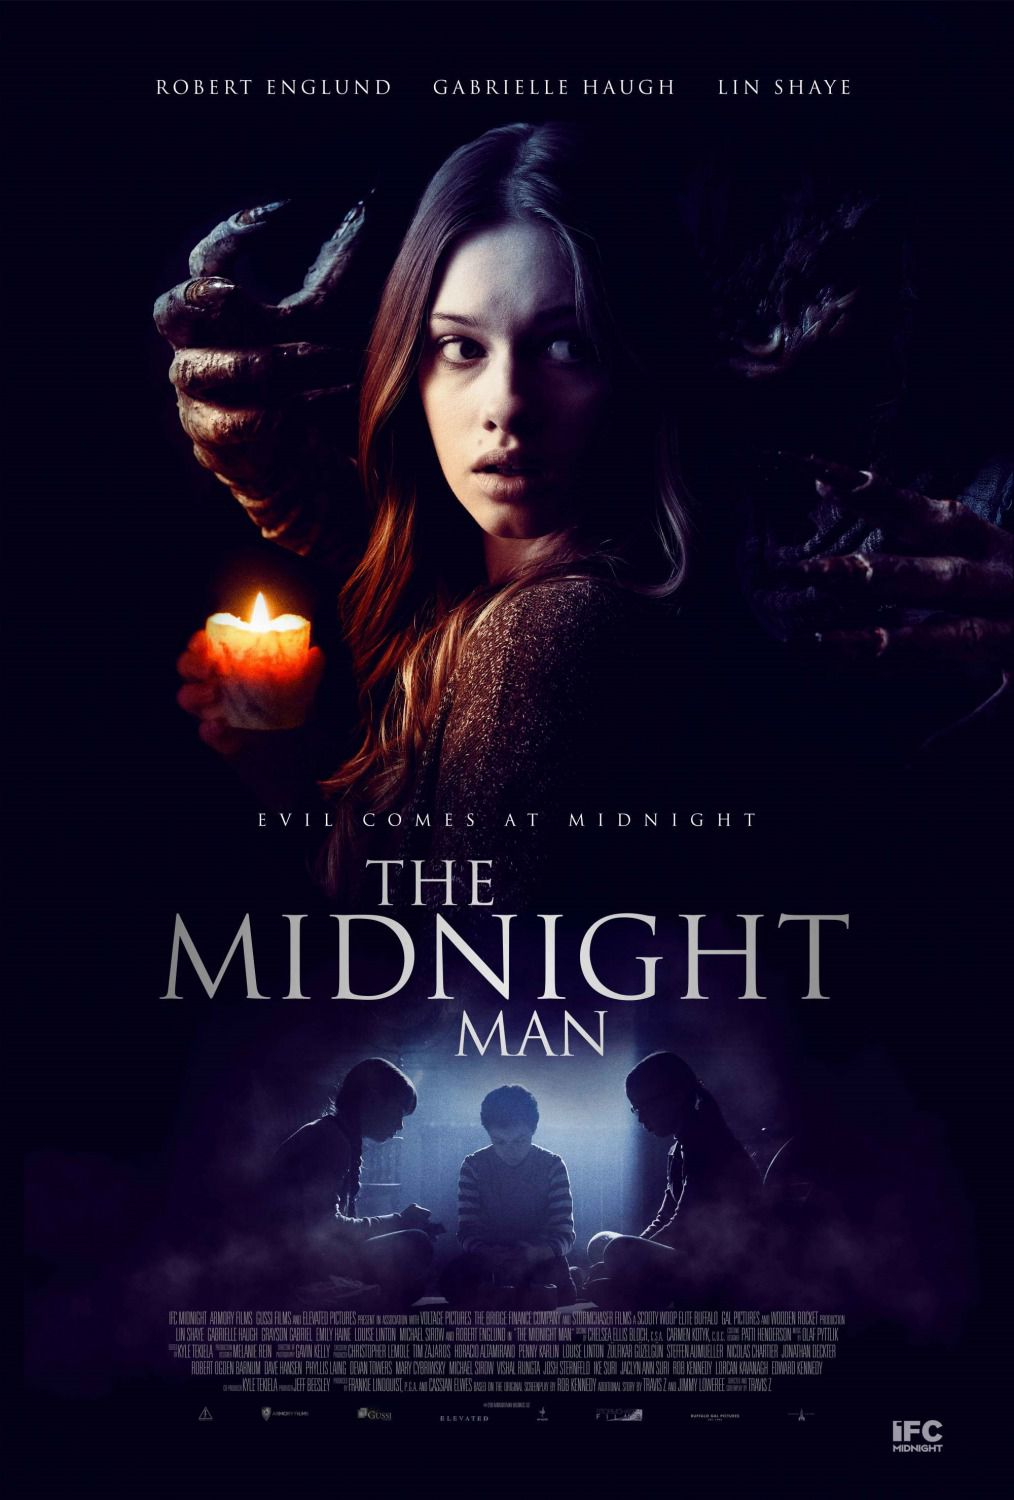 The Midnight Man - horror film poster